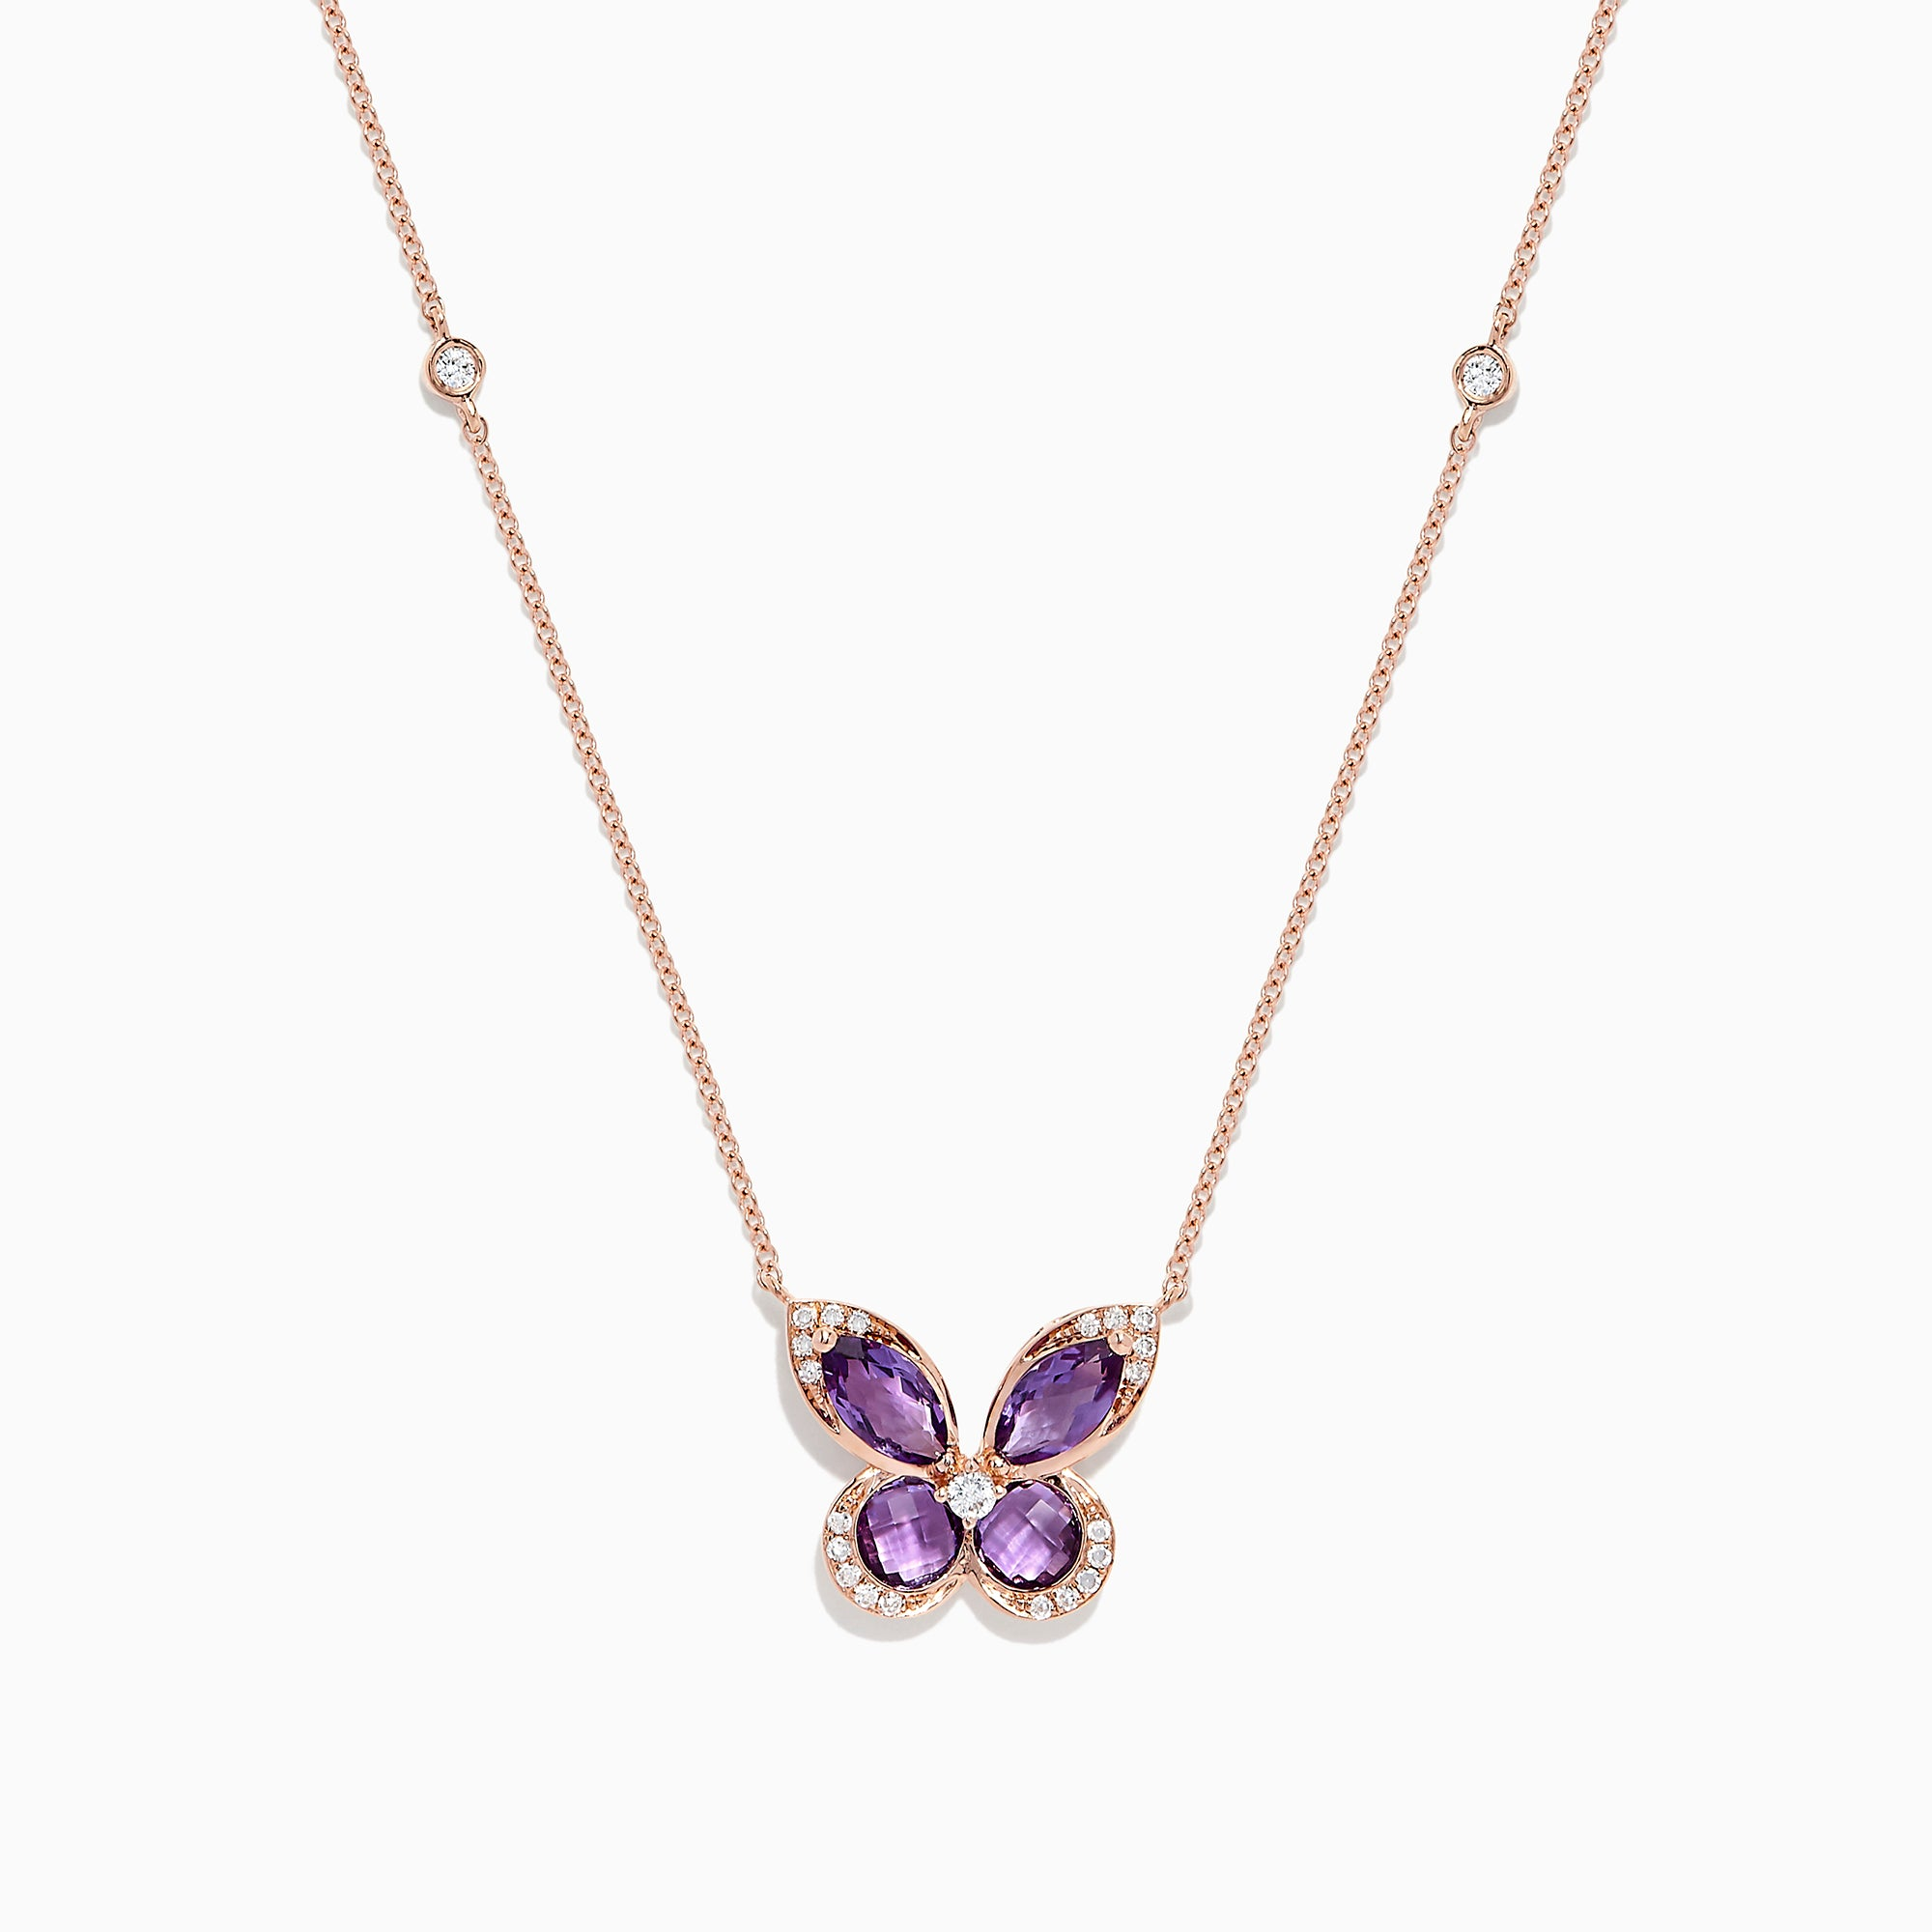 Effy Nature 14K Rose Gold Amethyst and Diamond Butterfly Necklace, 1.27 TCW